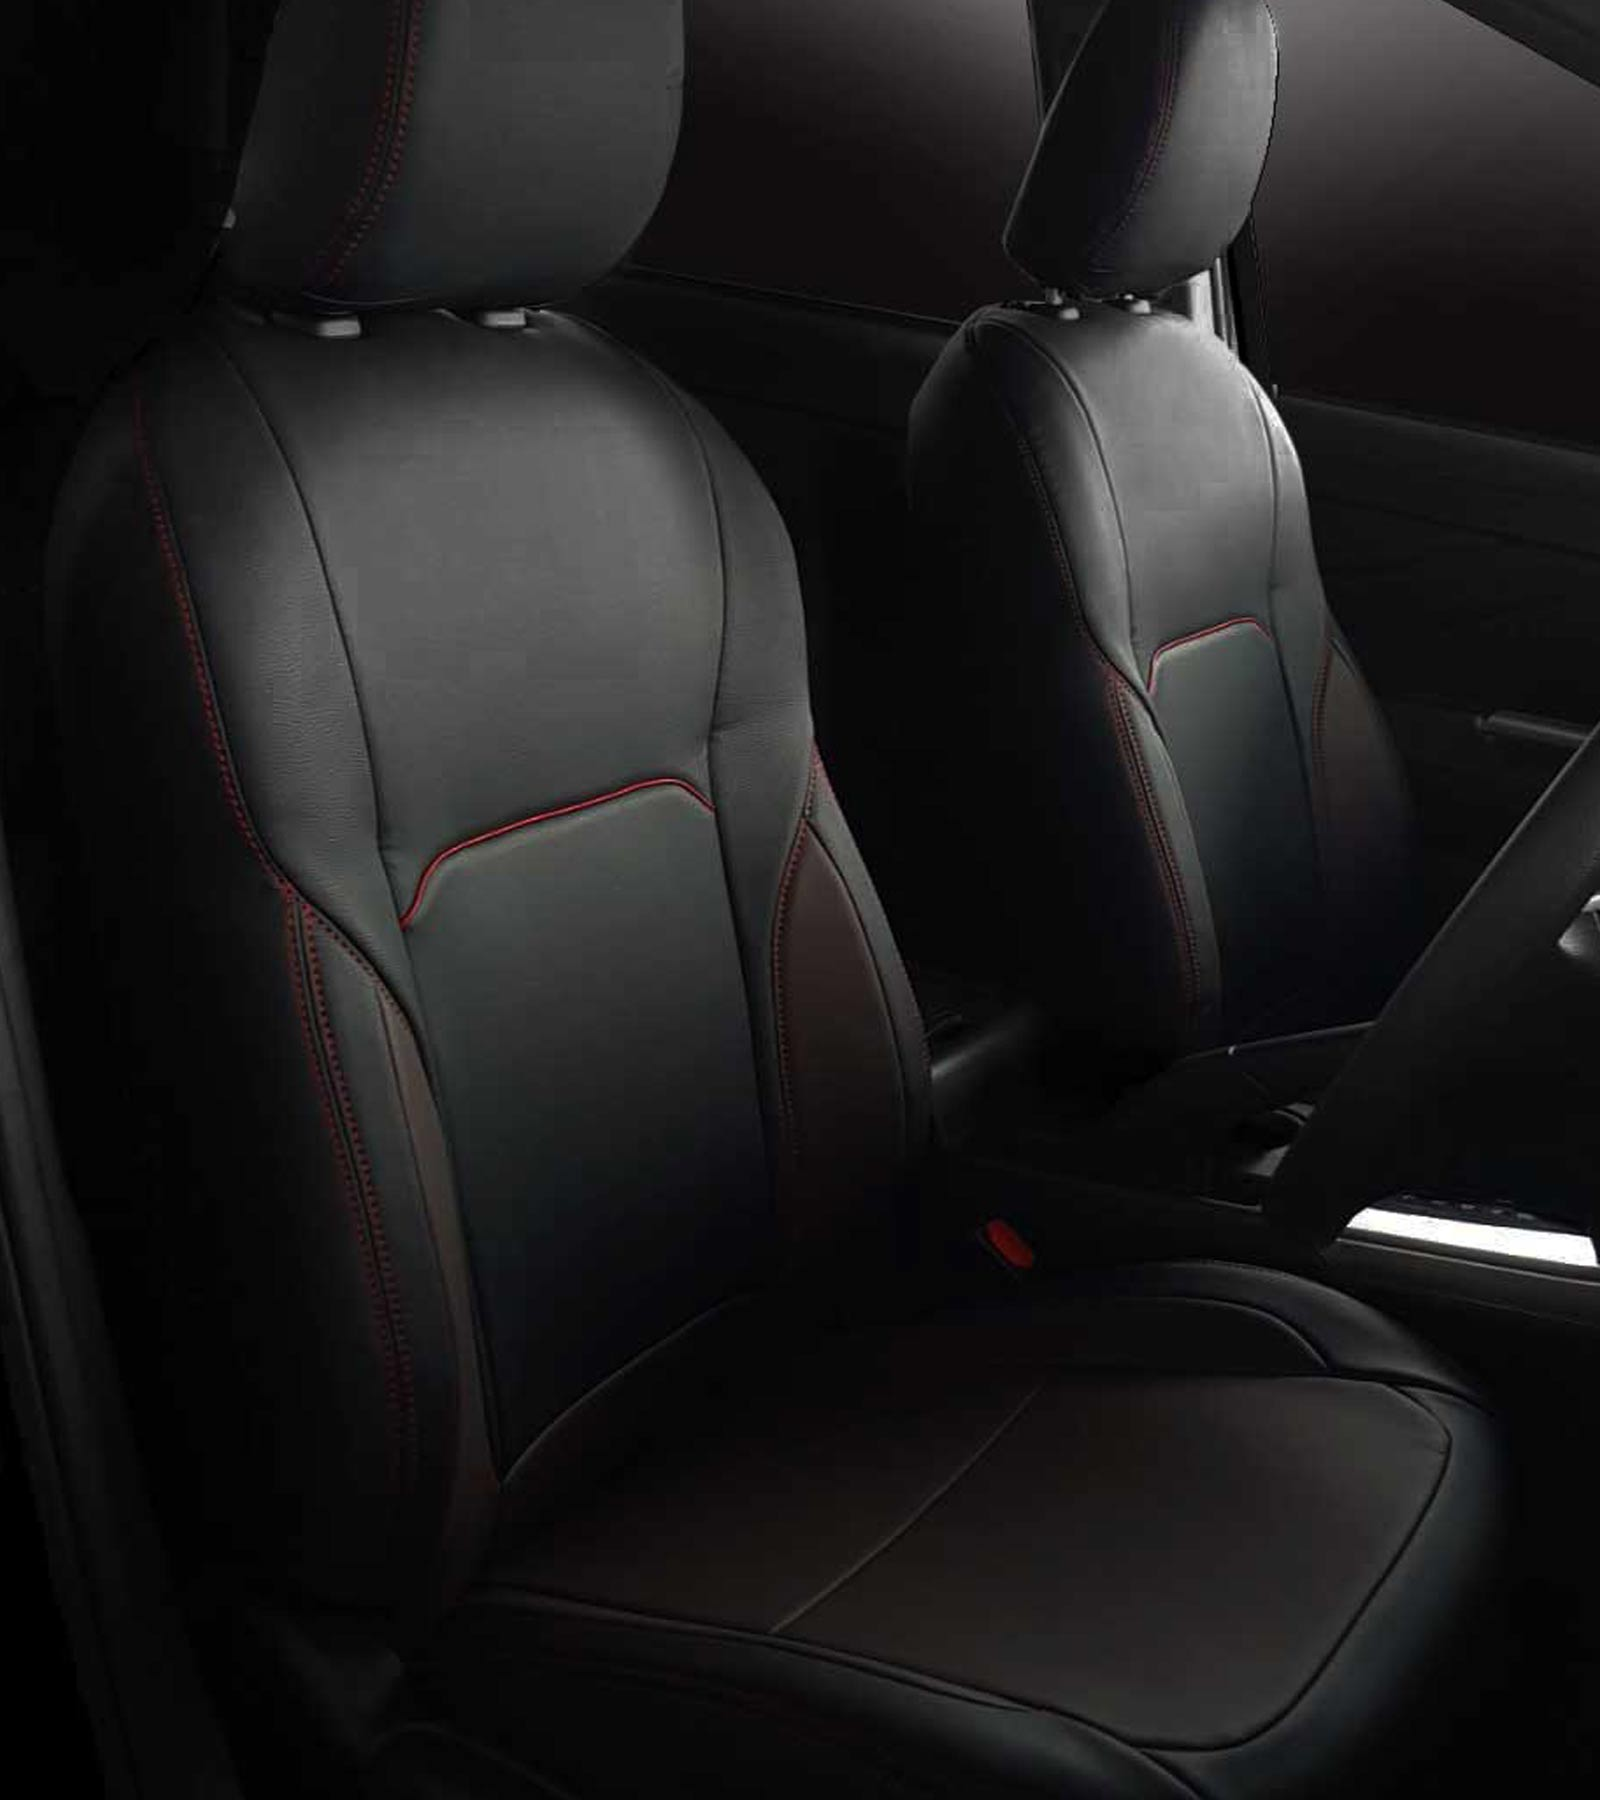 New Premium Seat Cover with Sporty Red Stitching